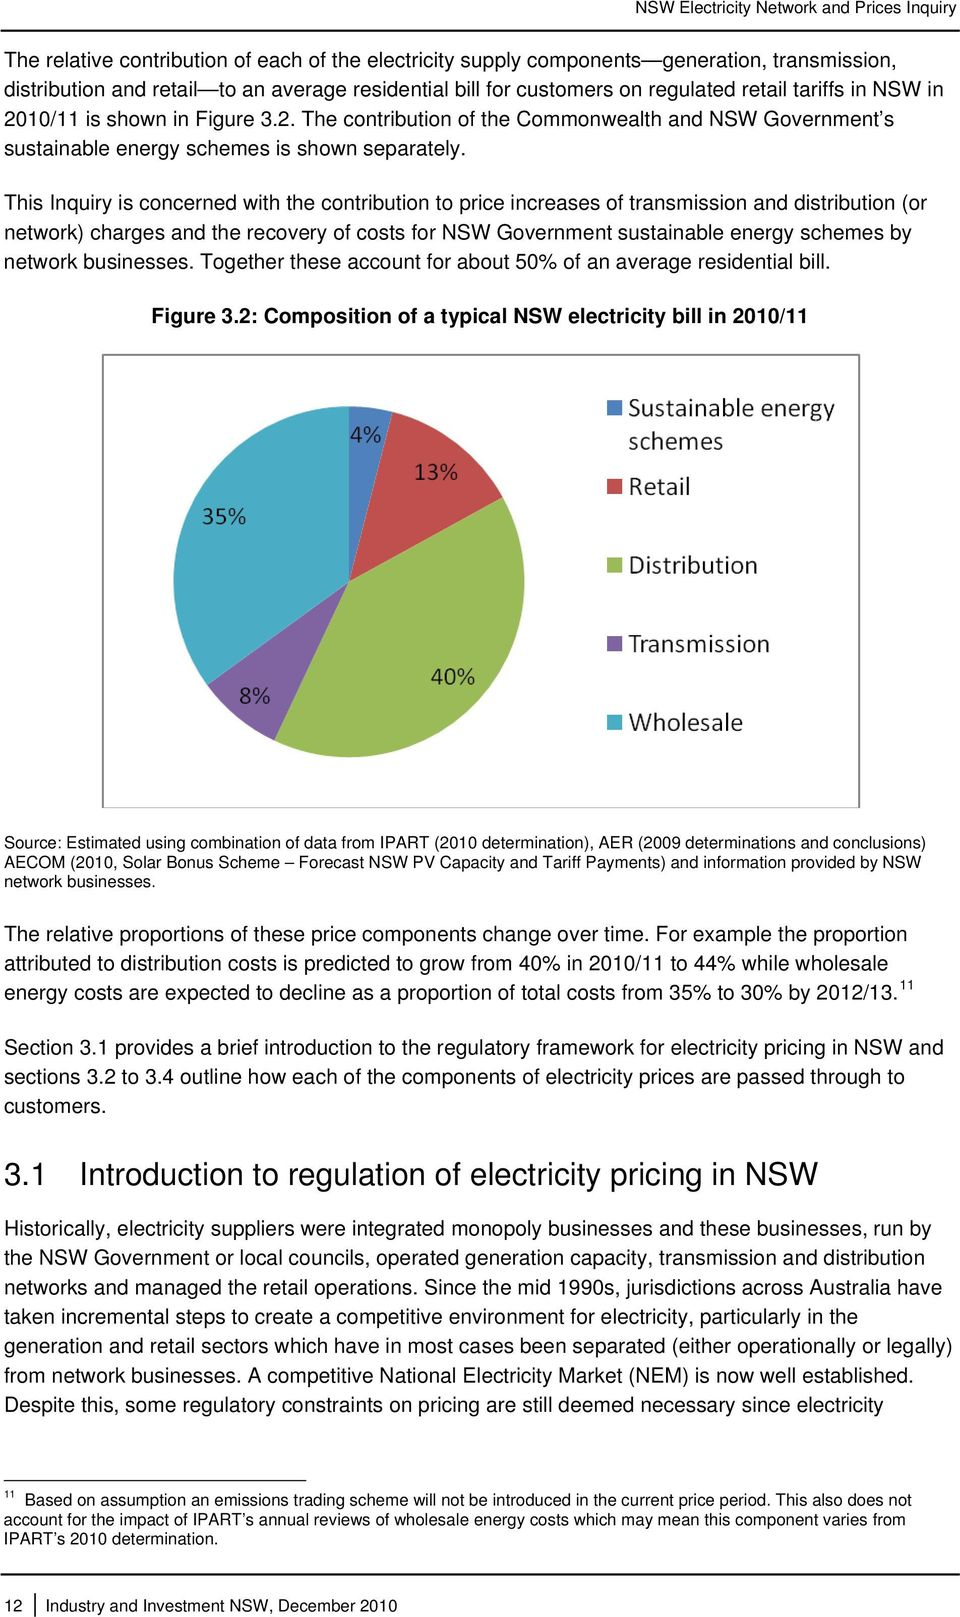 This Inquiry is concerned with the contribution to price increases of transmission and distribution (or network) charges and the recovery of costs for NSW Government sustainable energy schemes by